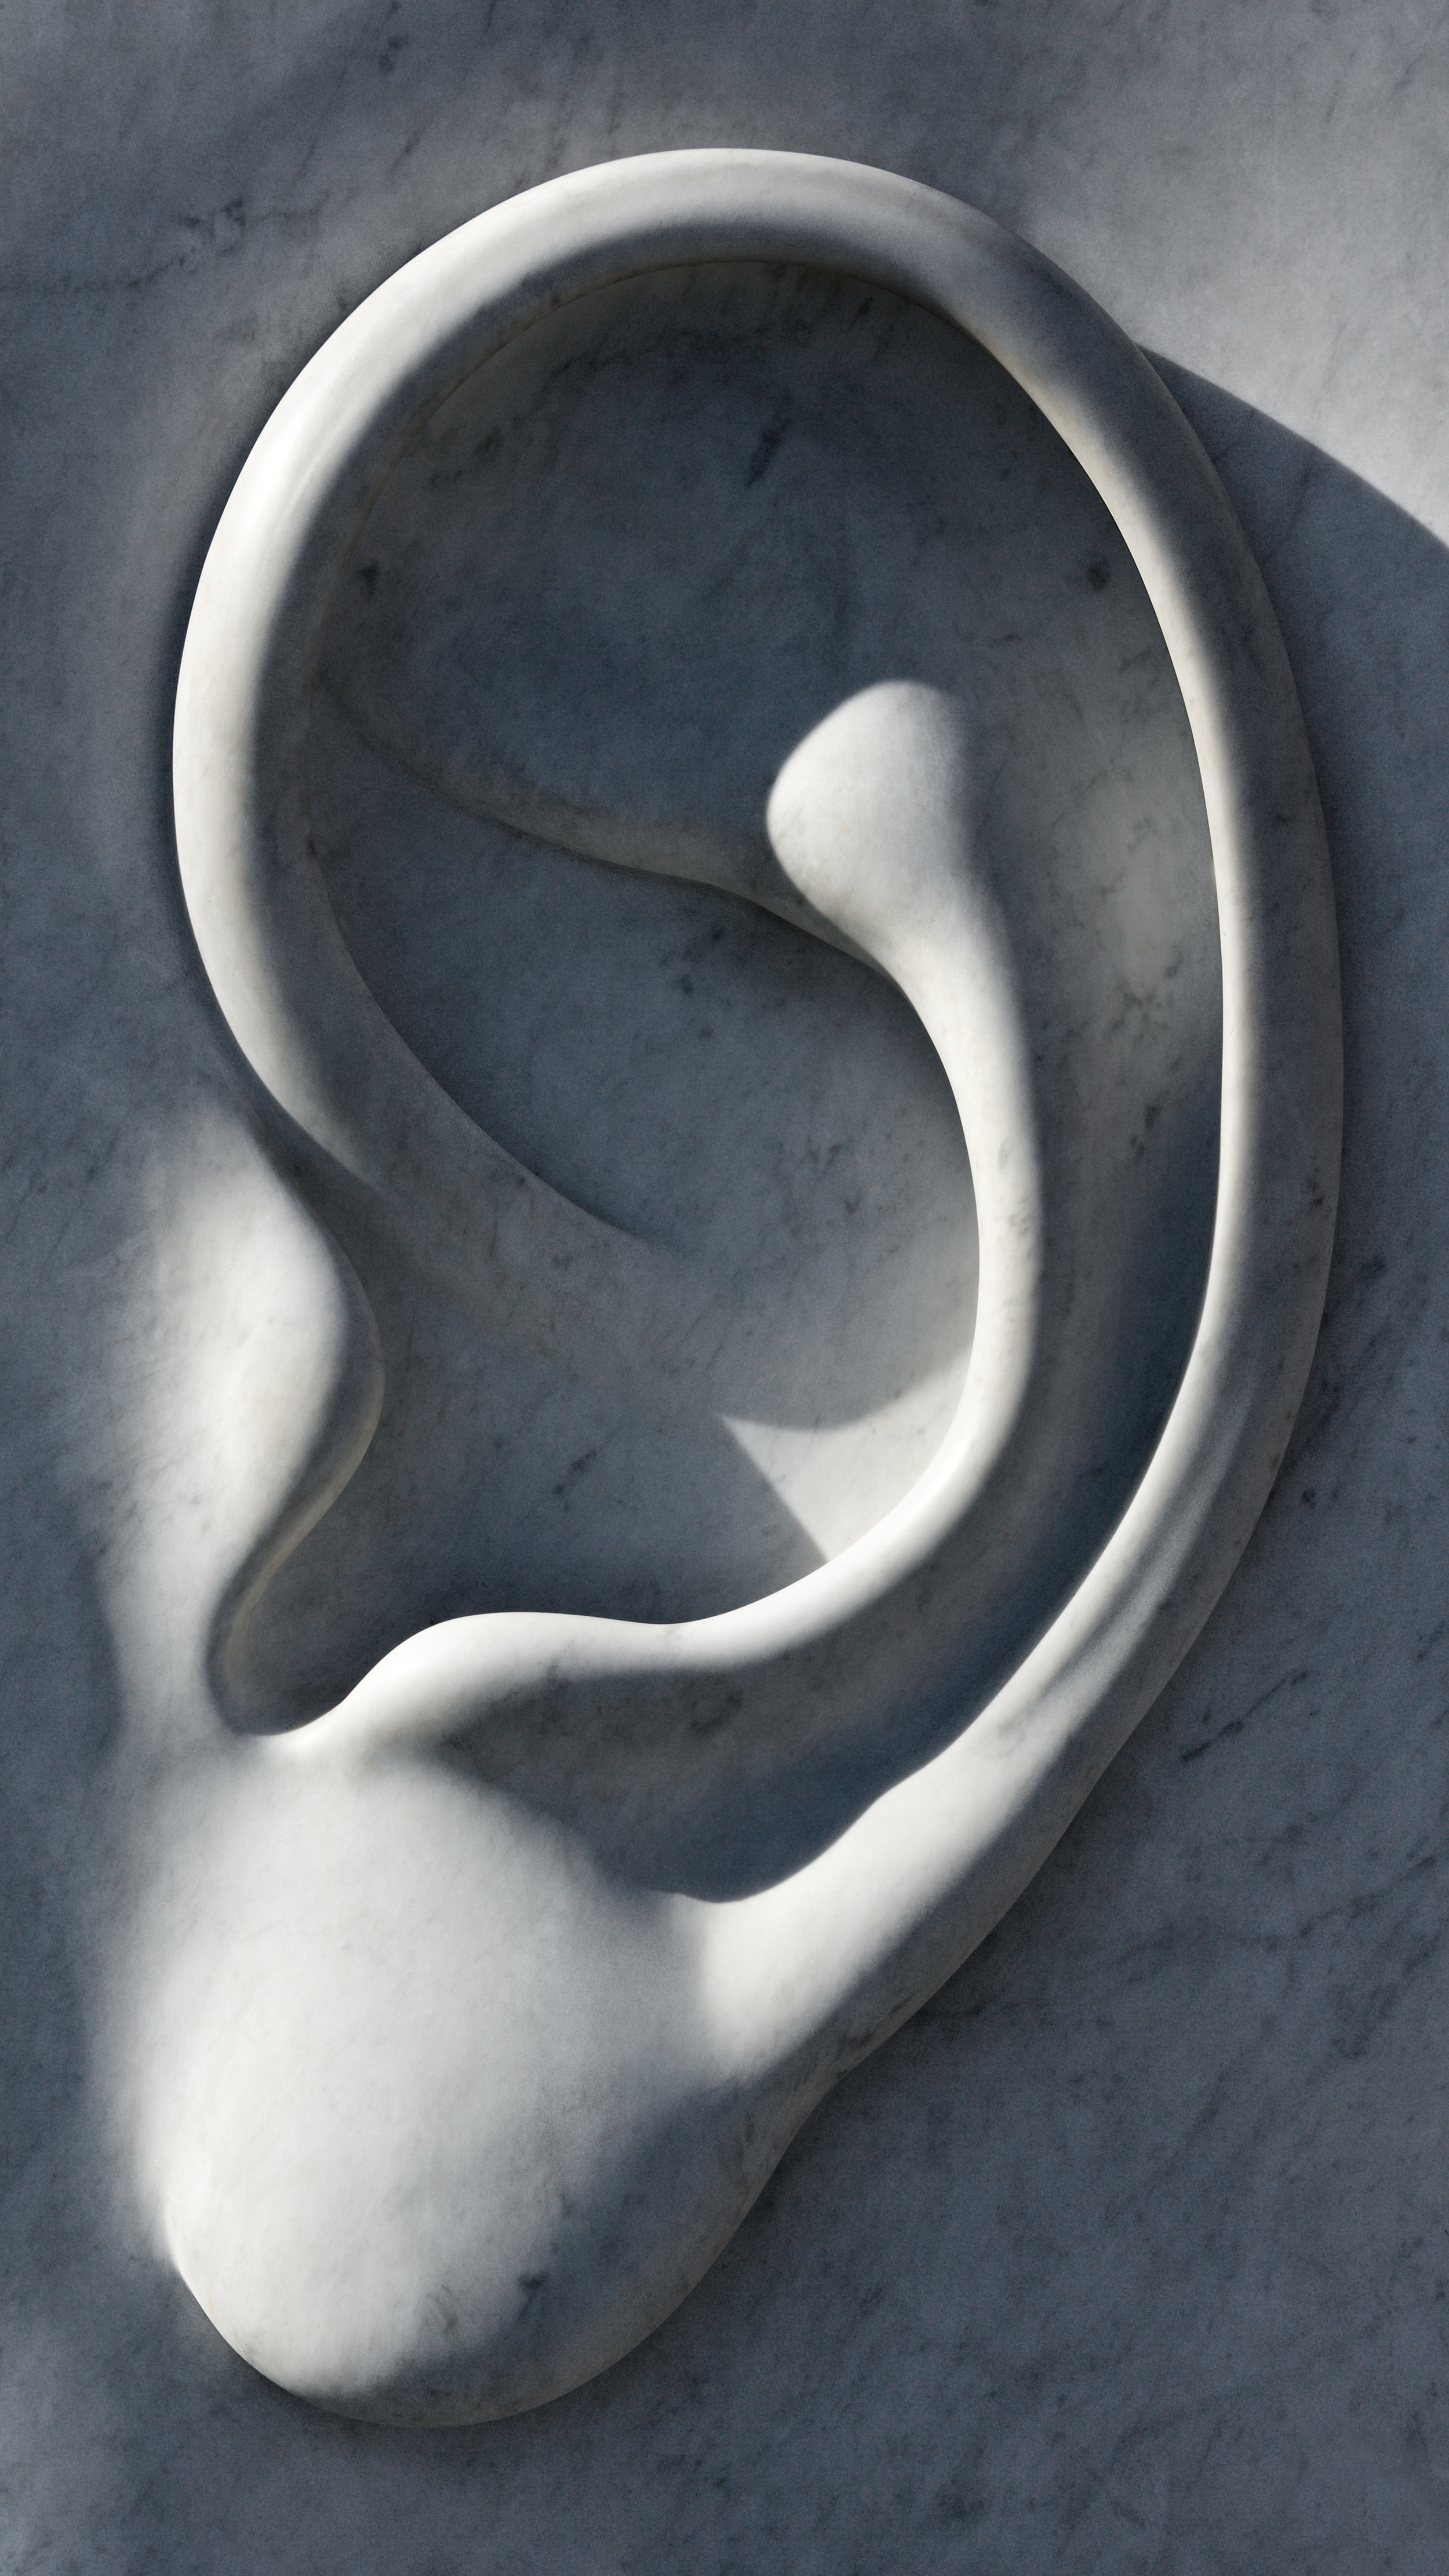 4 Major Causes Of Deafness And Hearing Loss